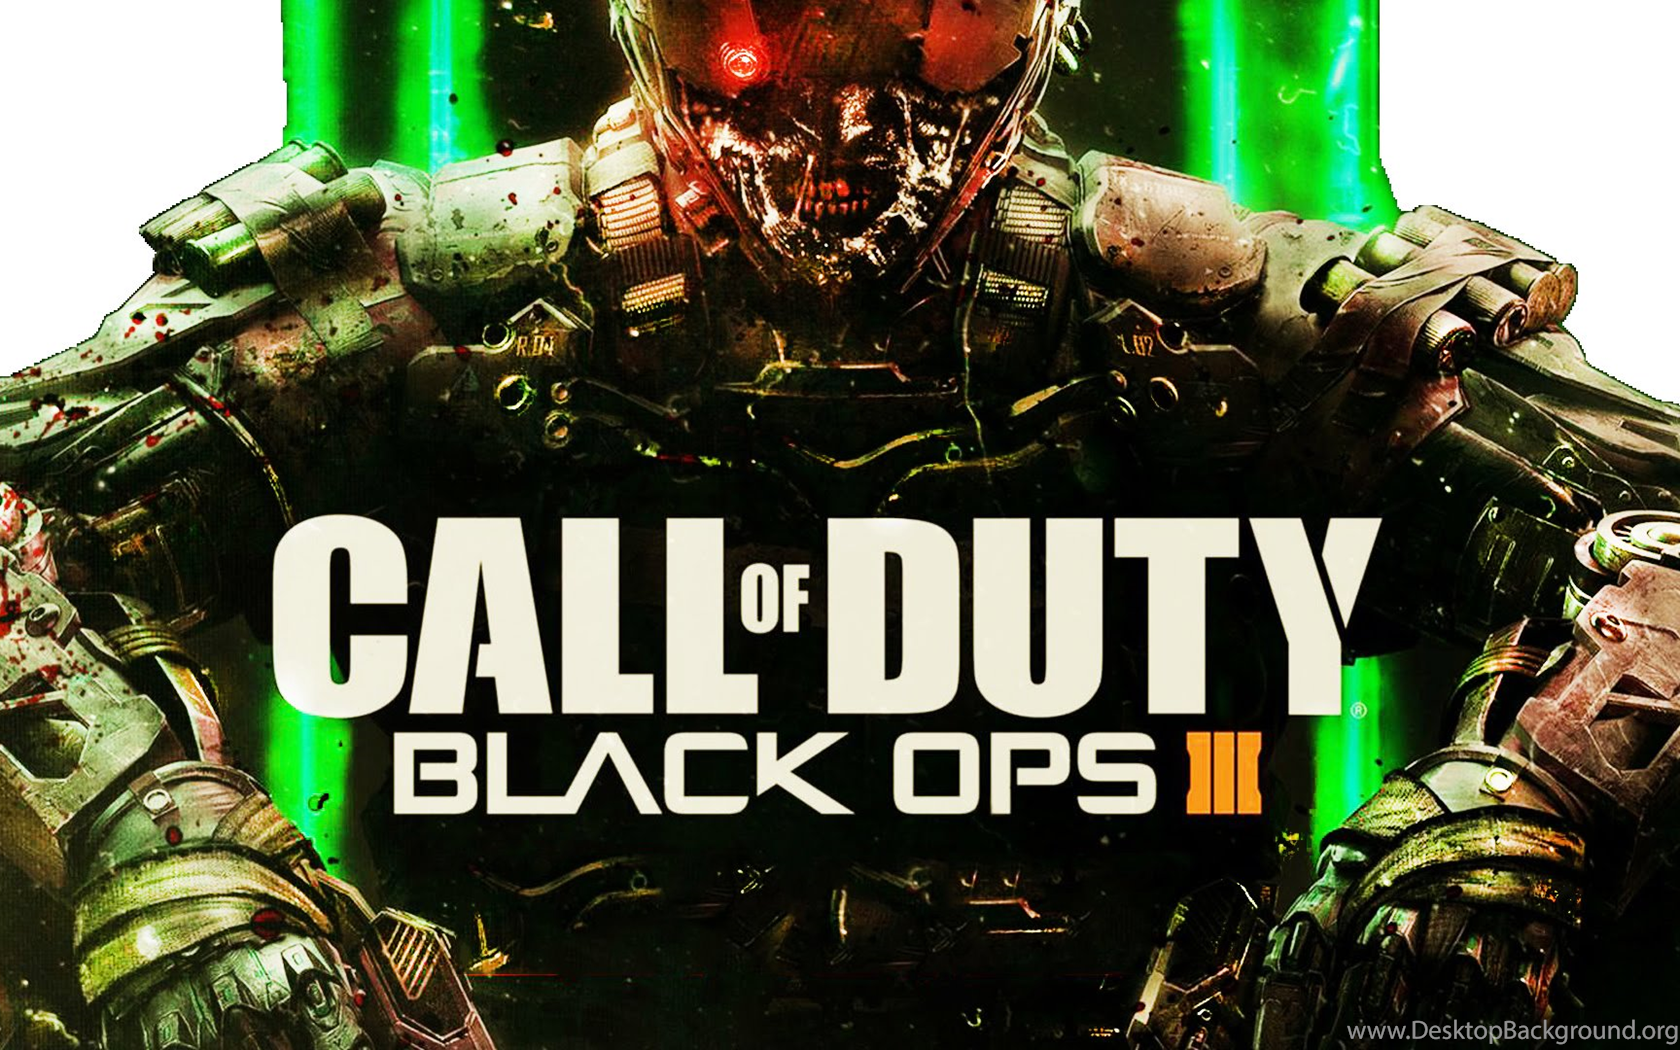 Call Of Duty Black Ops 3 Zombie Wallpaper Other Health Questions Desktop Background